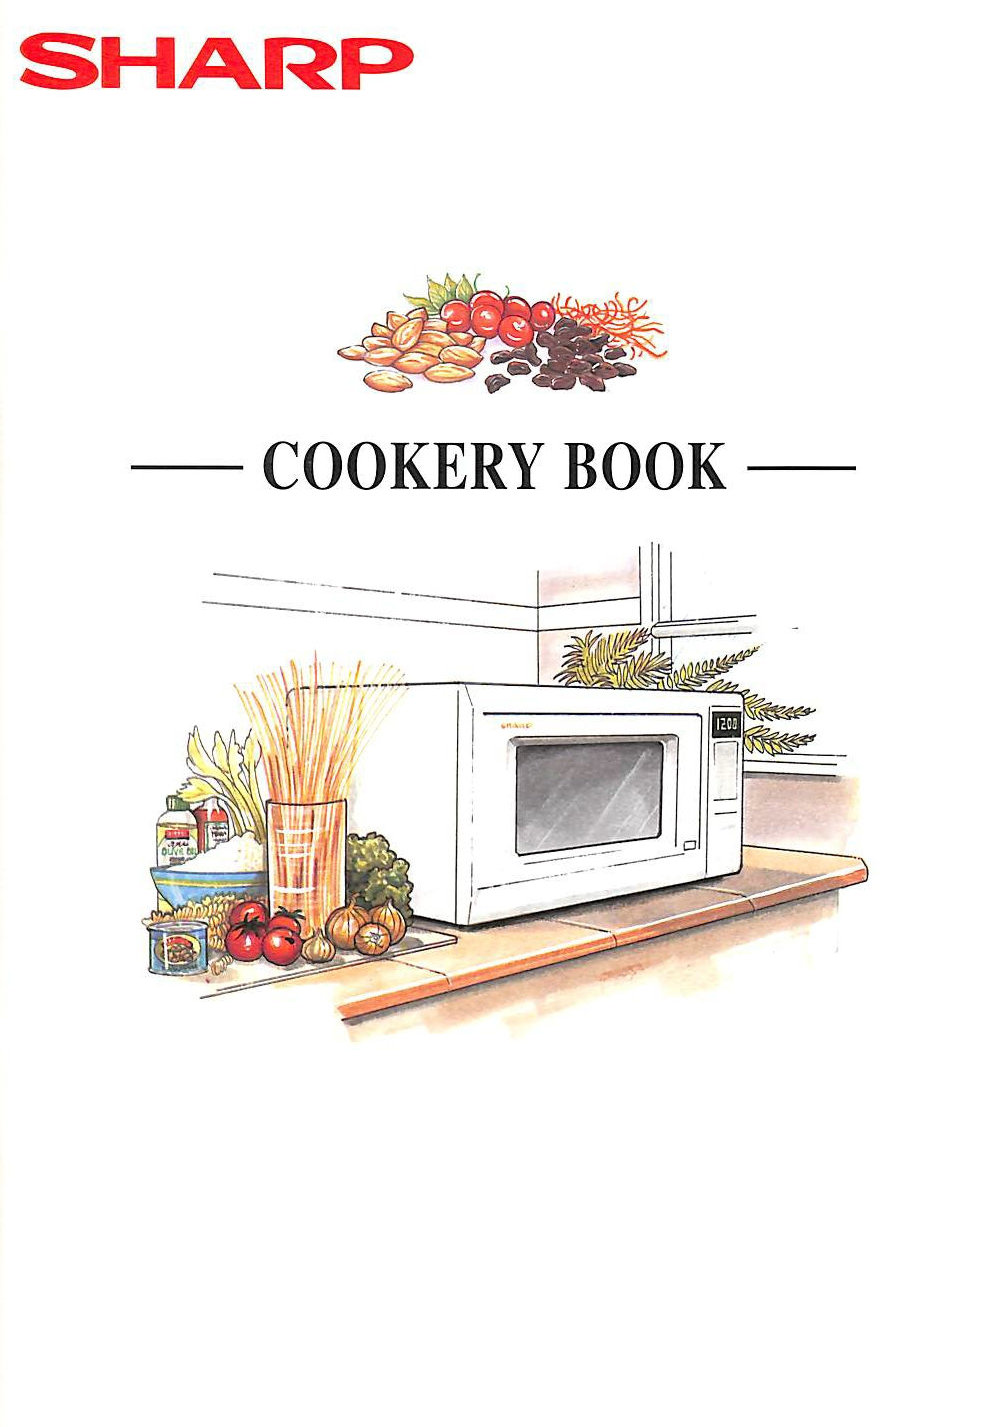 Image for Sharp Cookery Book